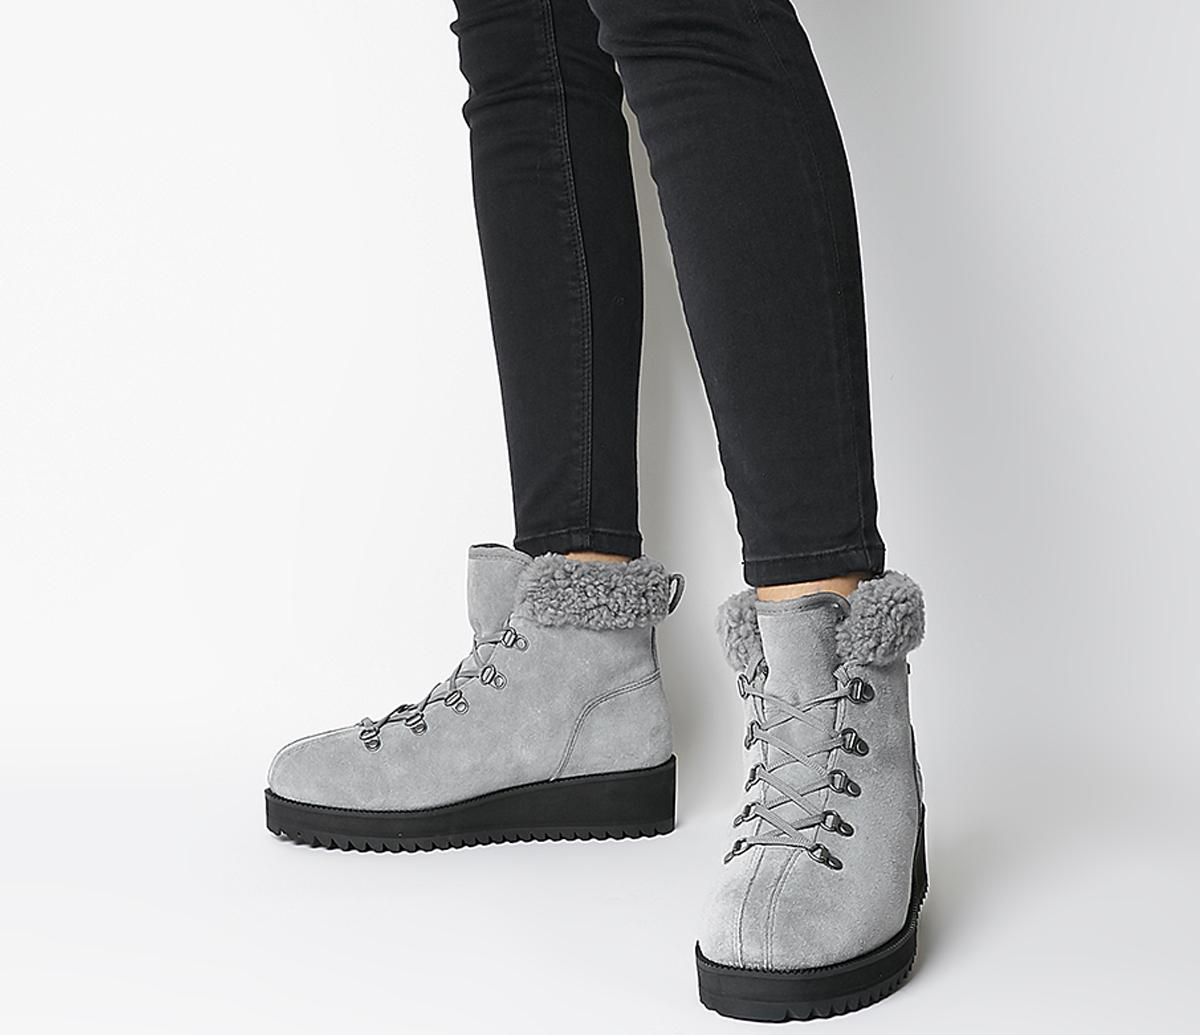 UGG Birch Lace Up Shearling Boots